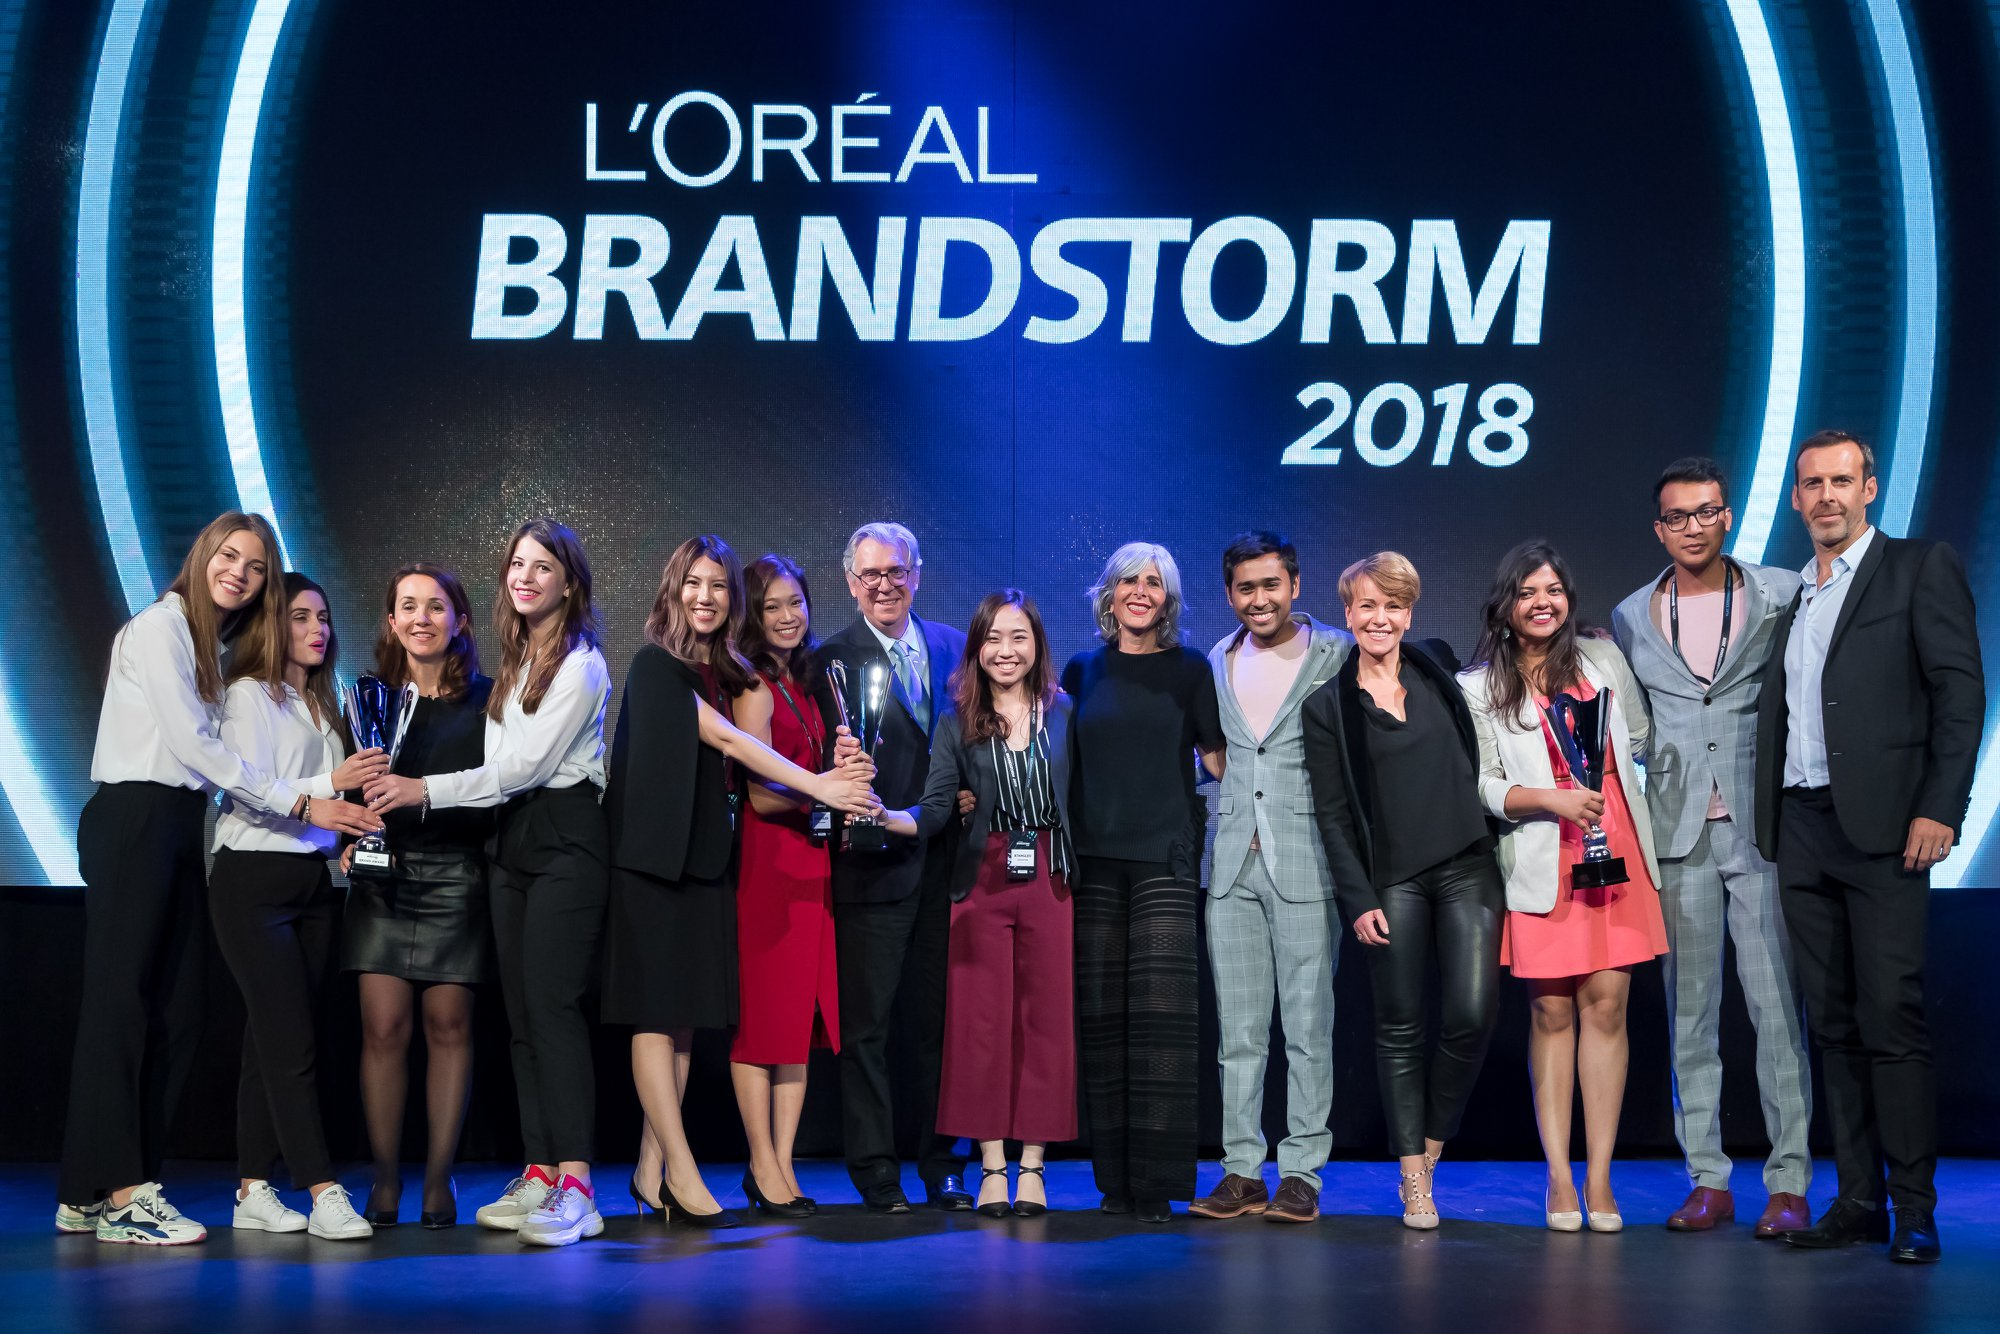 LOREAL_Location_Spain_Brandstorm